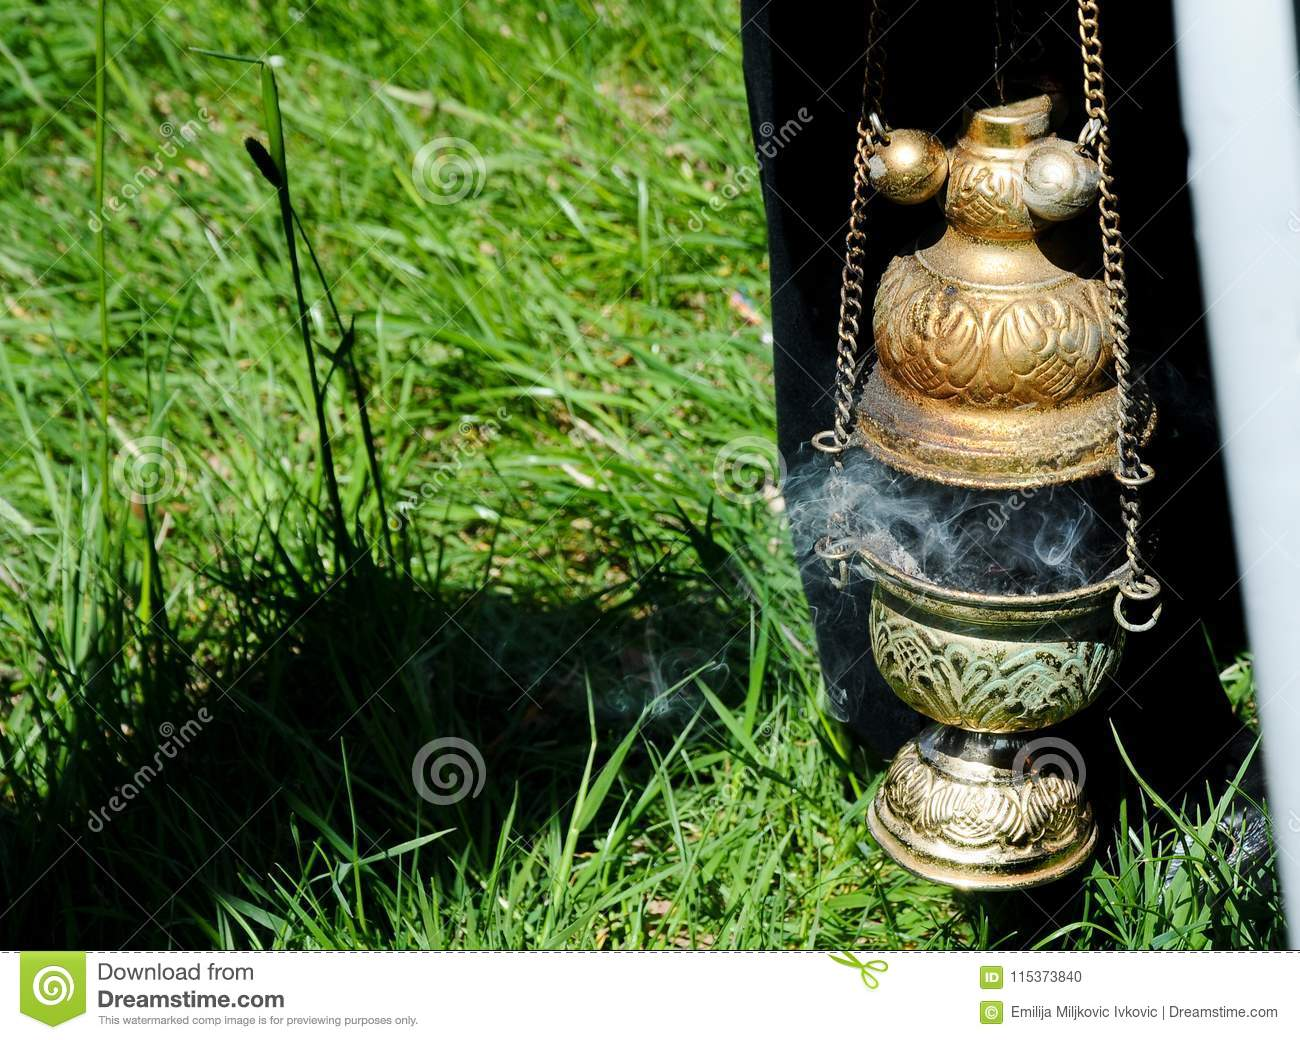 incense holder for traditional orthodox ritual, with smoke of burning incense